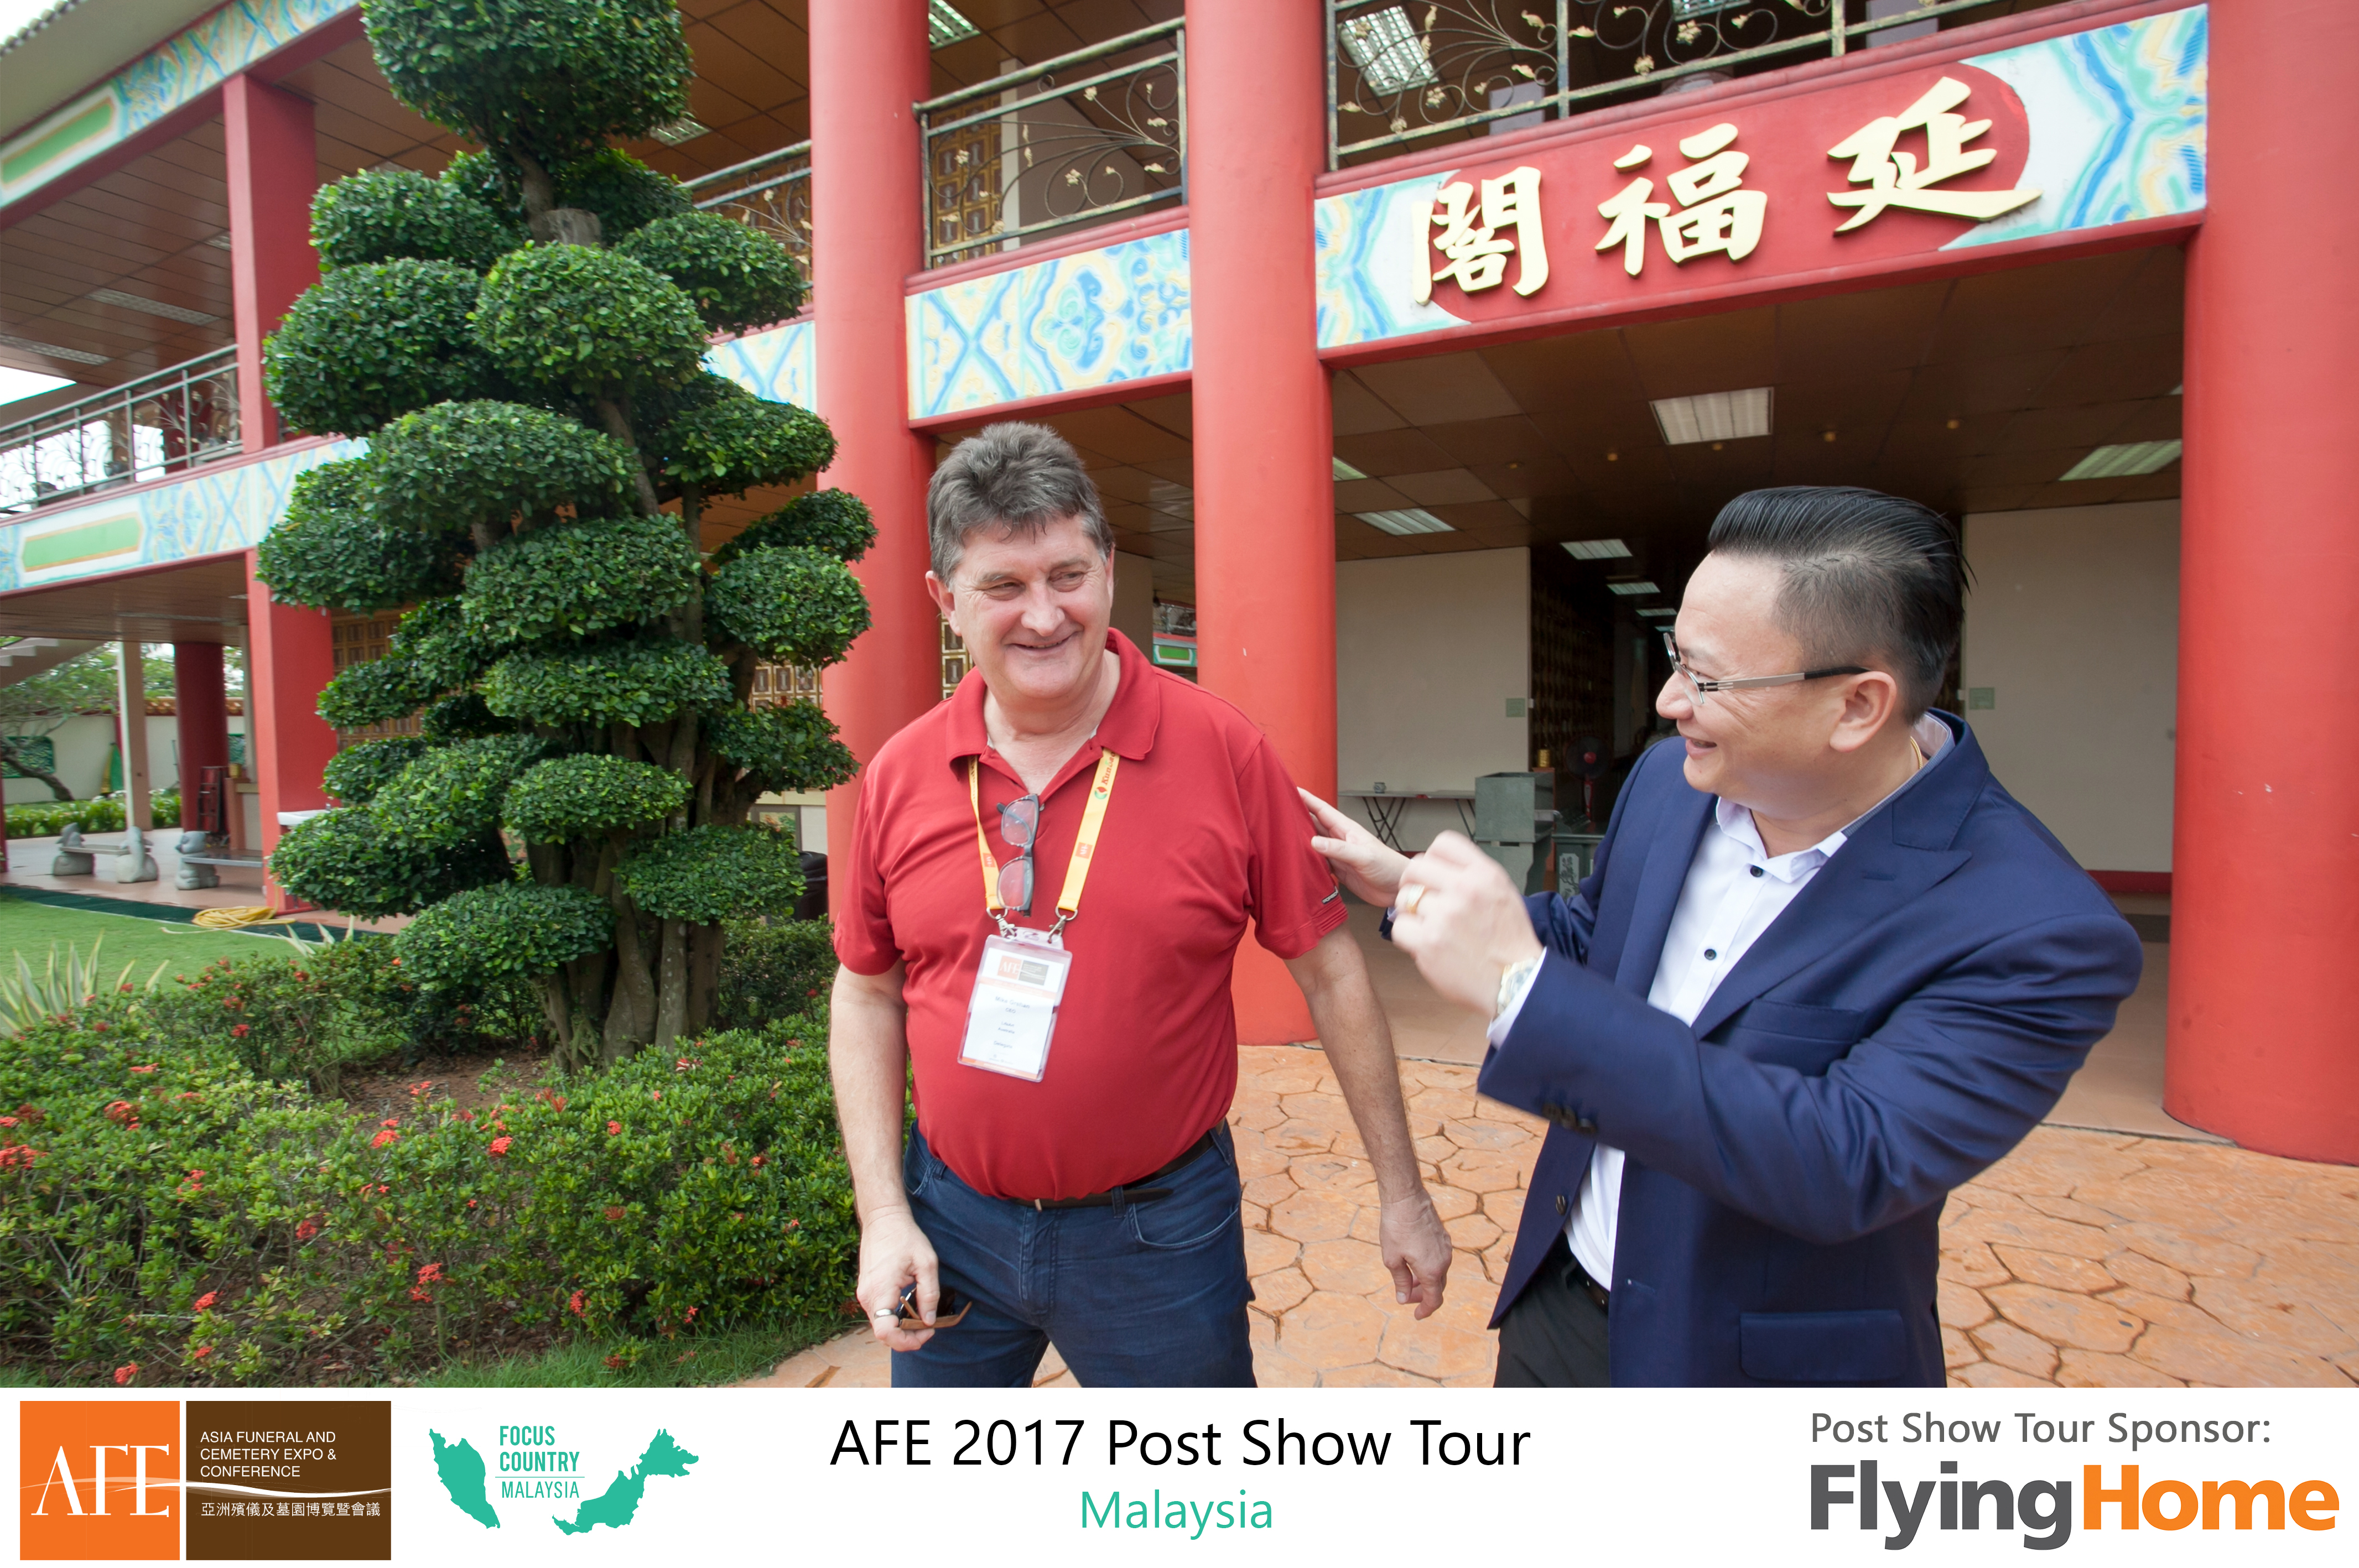 AFE Post Show Tour 2017 Day 4 - 20